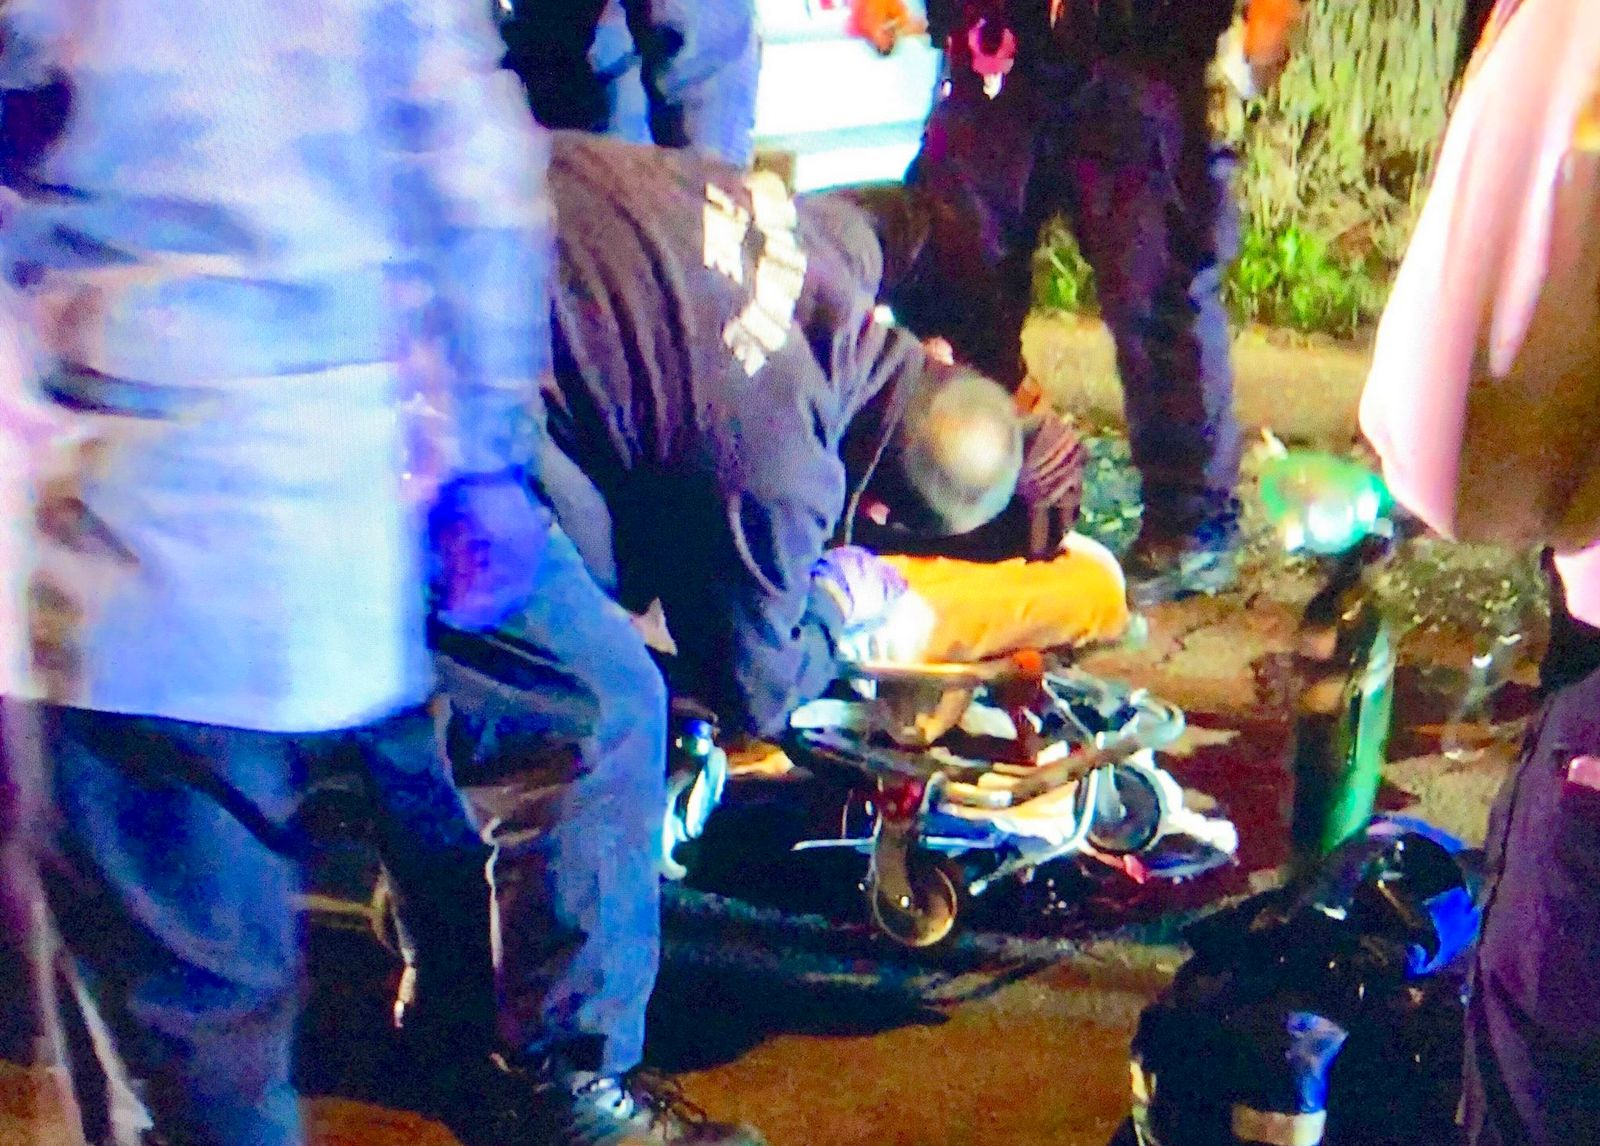 Paramedics attempt to save a 2016 shooting victim. (Photo credit: Christopher Ervin)